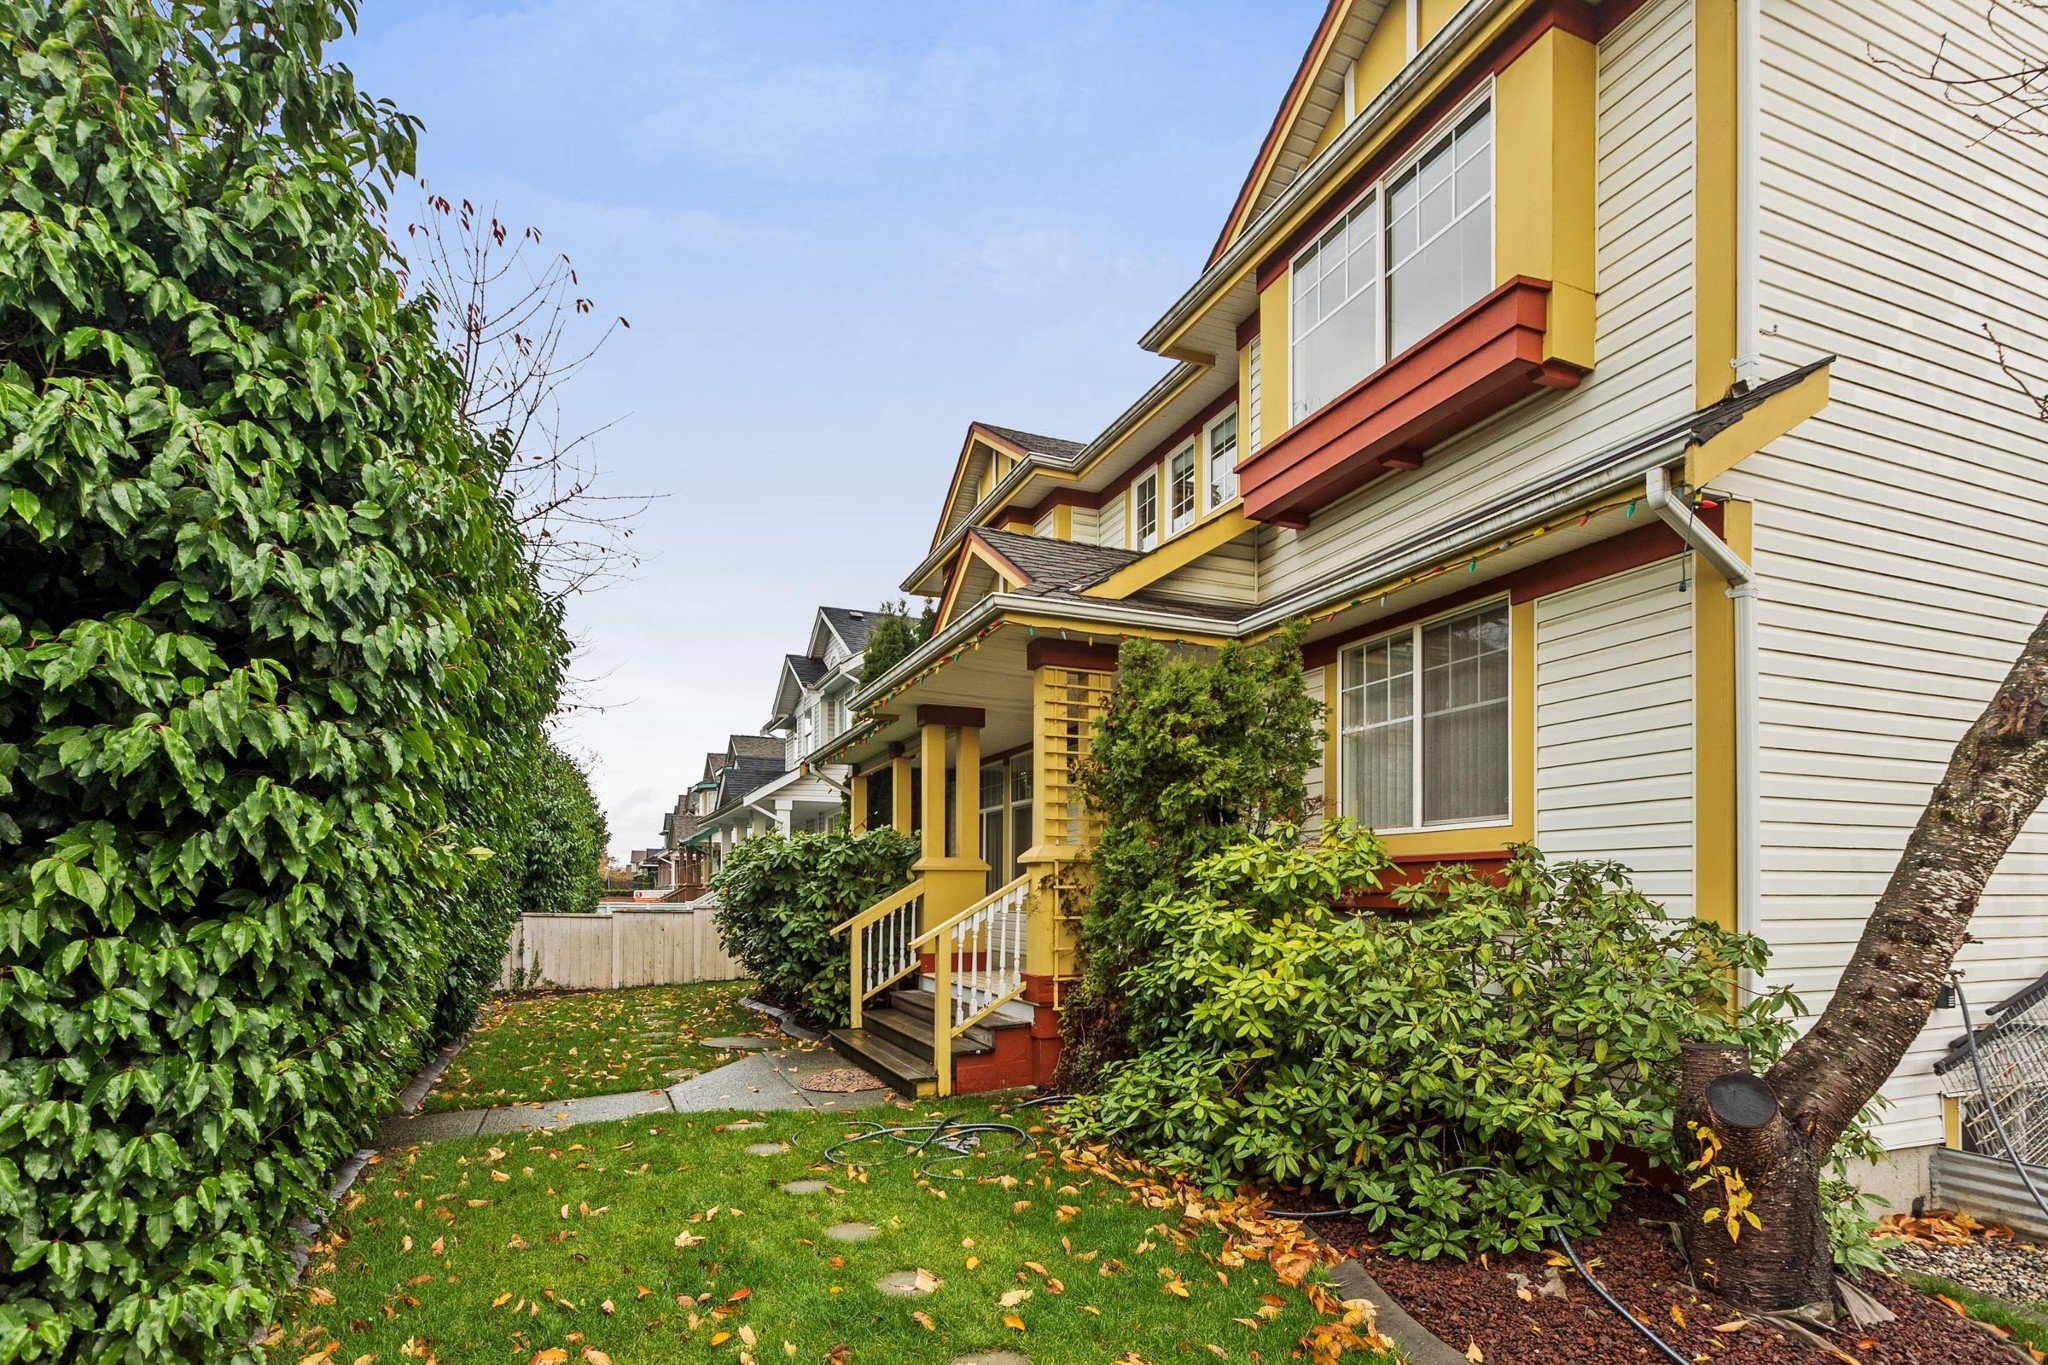 """Main Photo: 6510 184 Street in Surrey: Cloverdale BC House for sale in """"CLOVER VALLEY"""" (Cloverdale)  : MLS®# R2222955"""